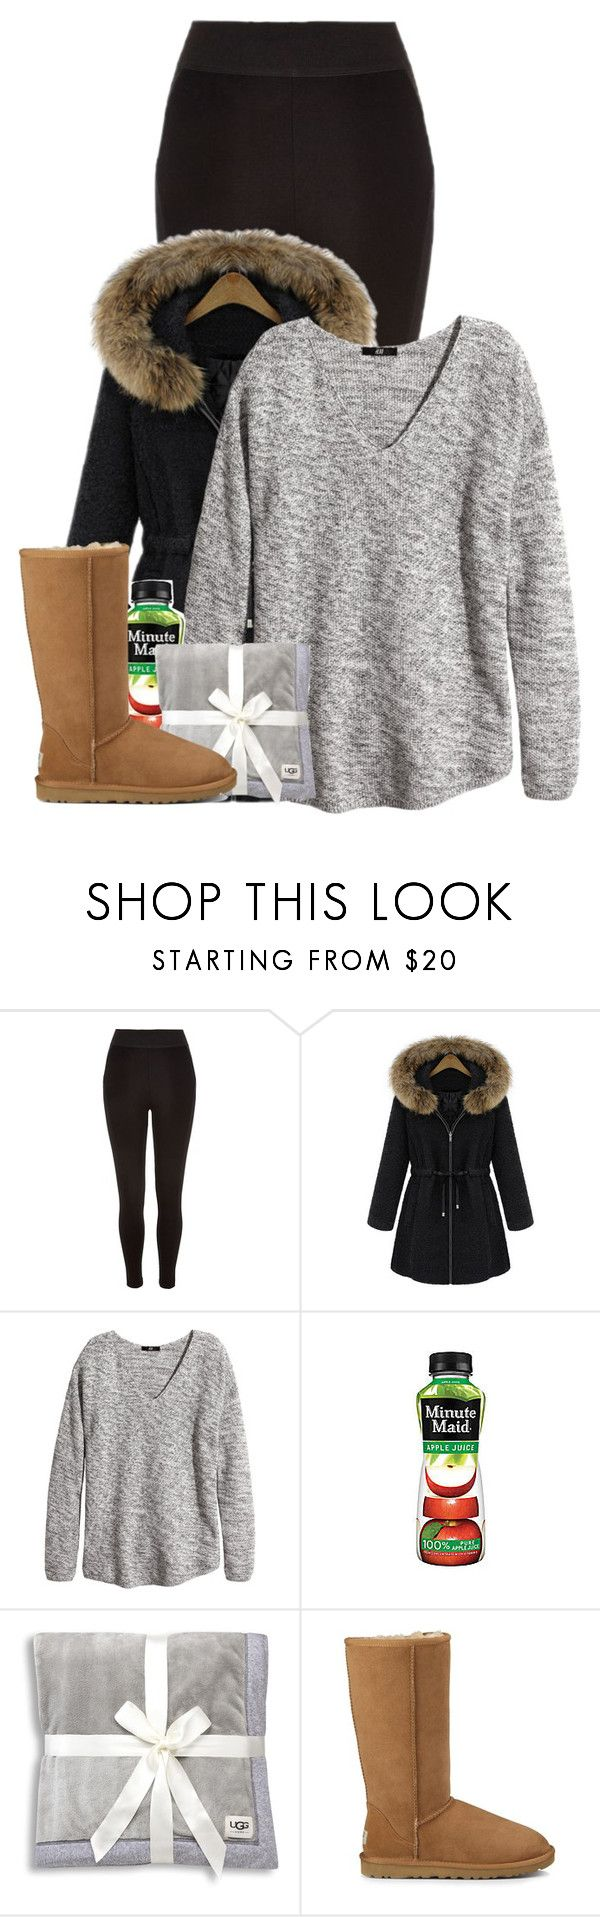 """""""Untitled #422"""" by pinkkid ❤ liked on Polyvore featuring River Island, H&M and UGG"""